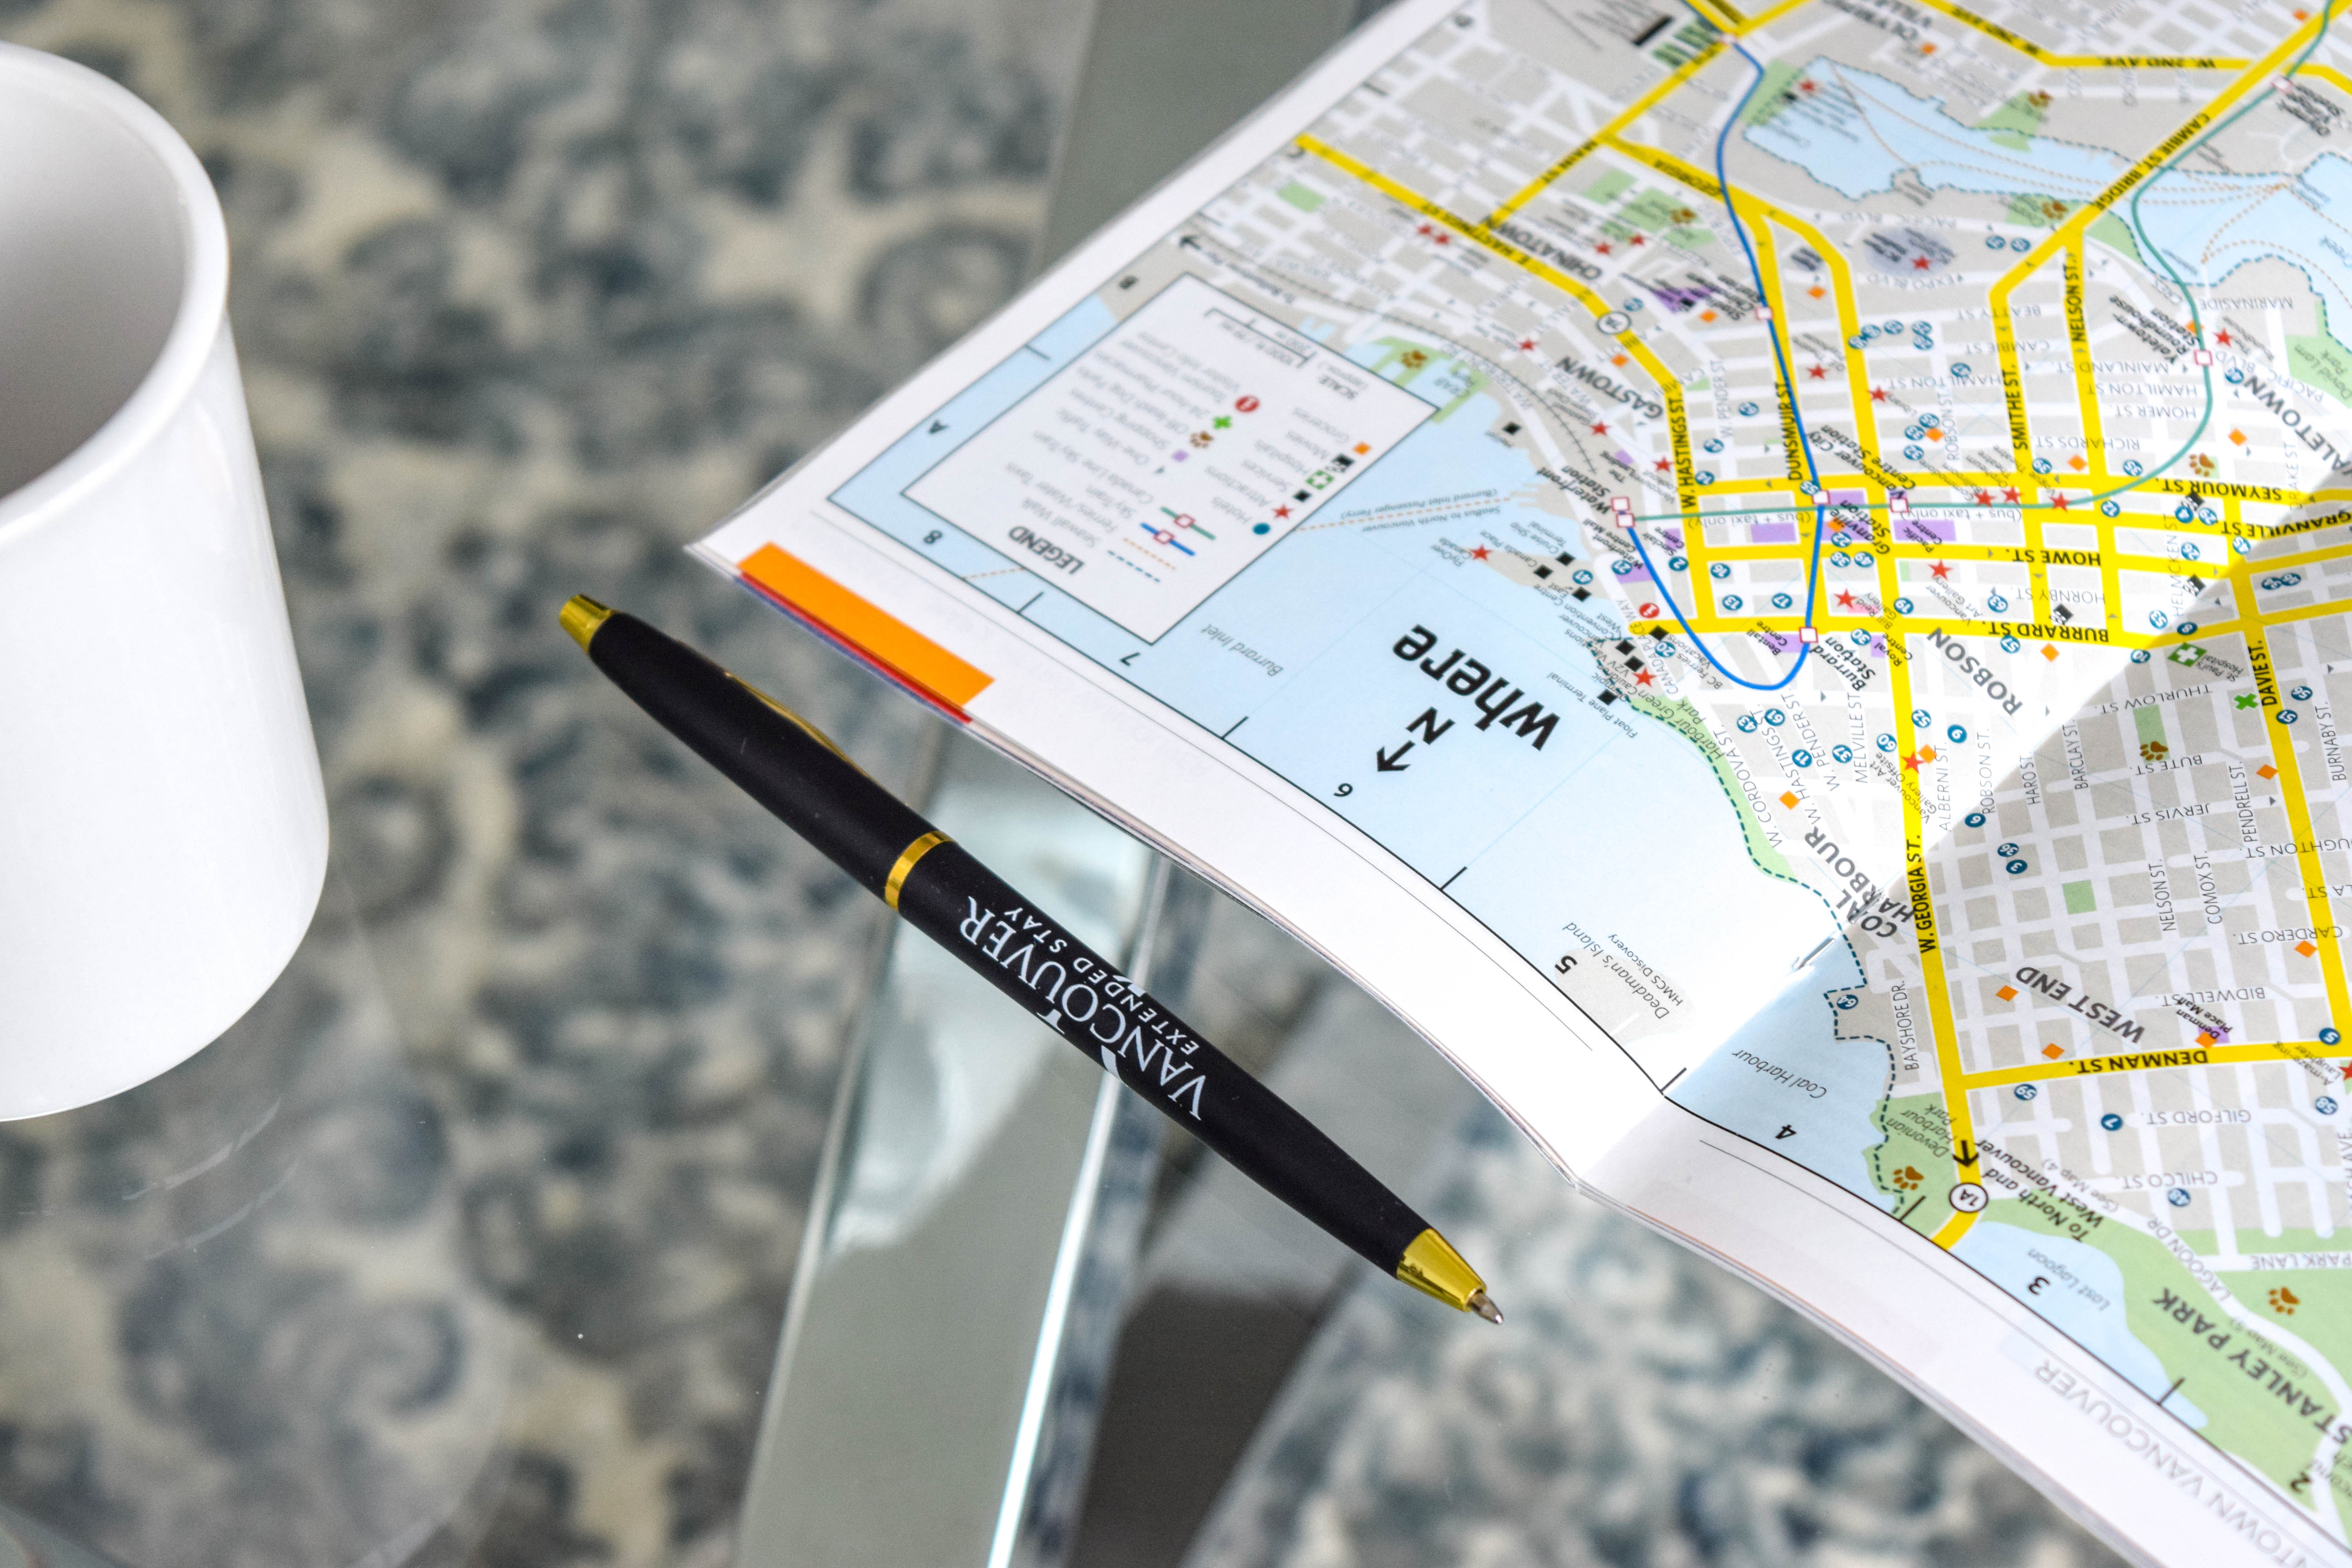 Vancouver's map on the table with pen and mug